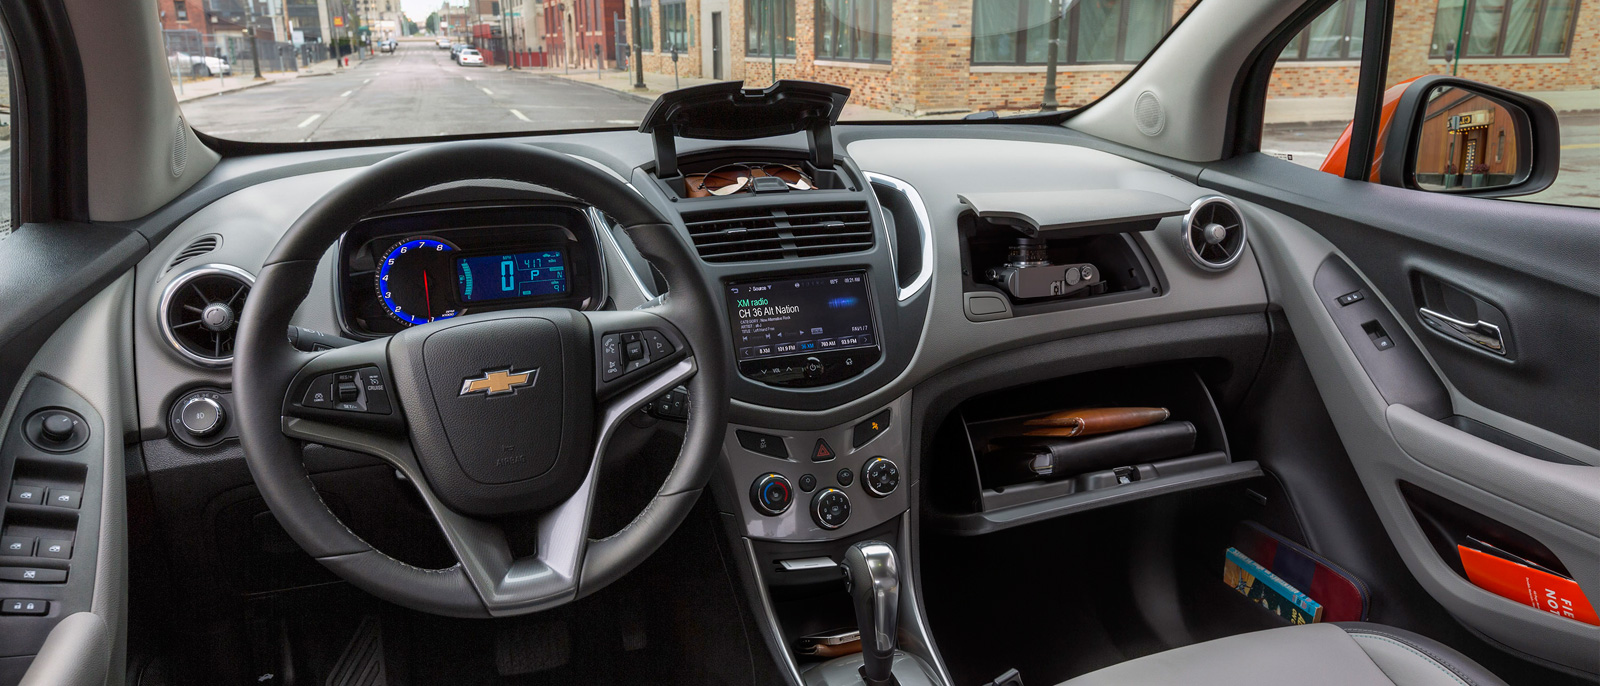 2016 Chevy Trax Interior Cabin